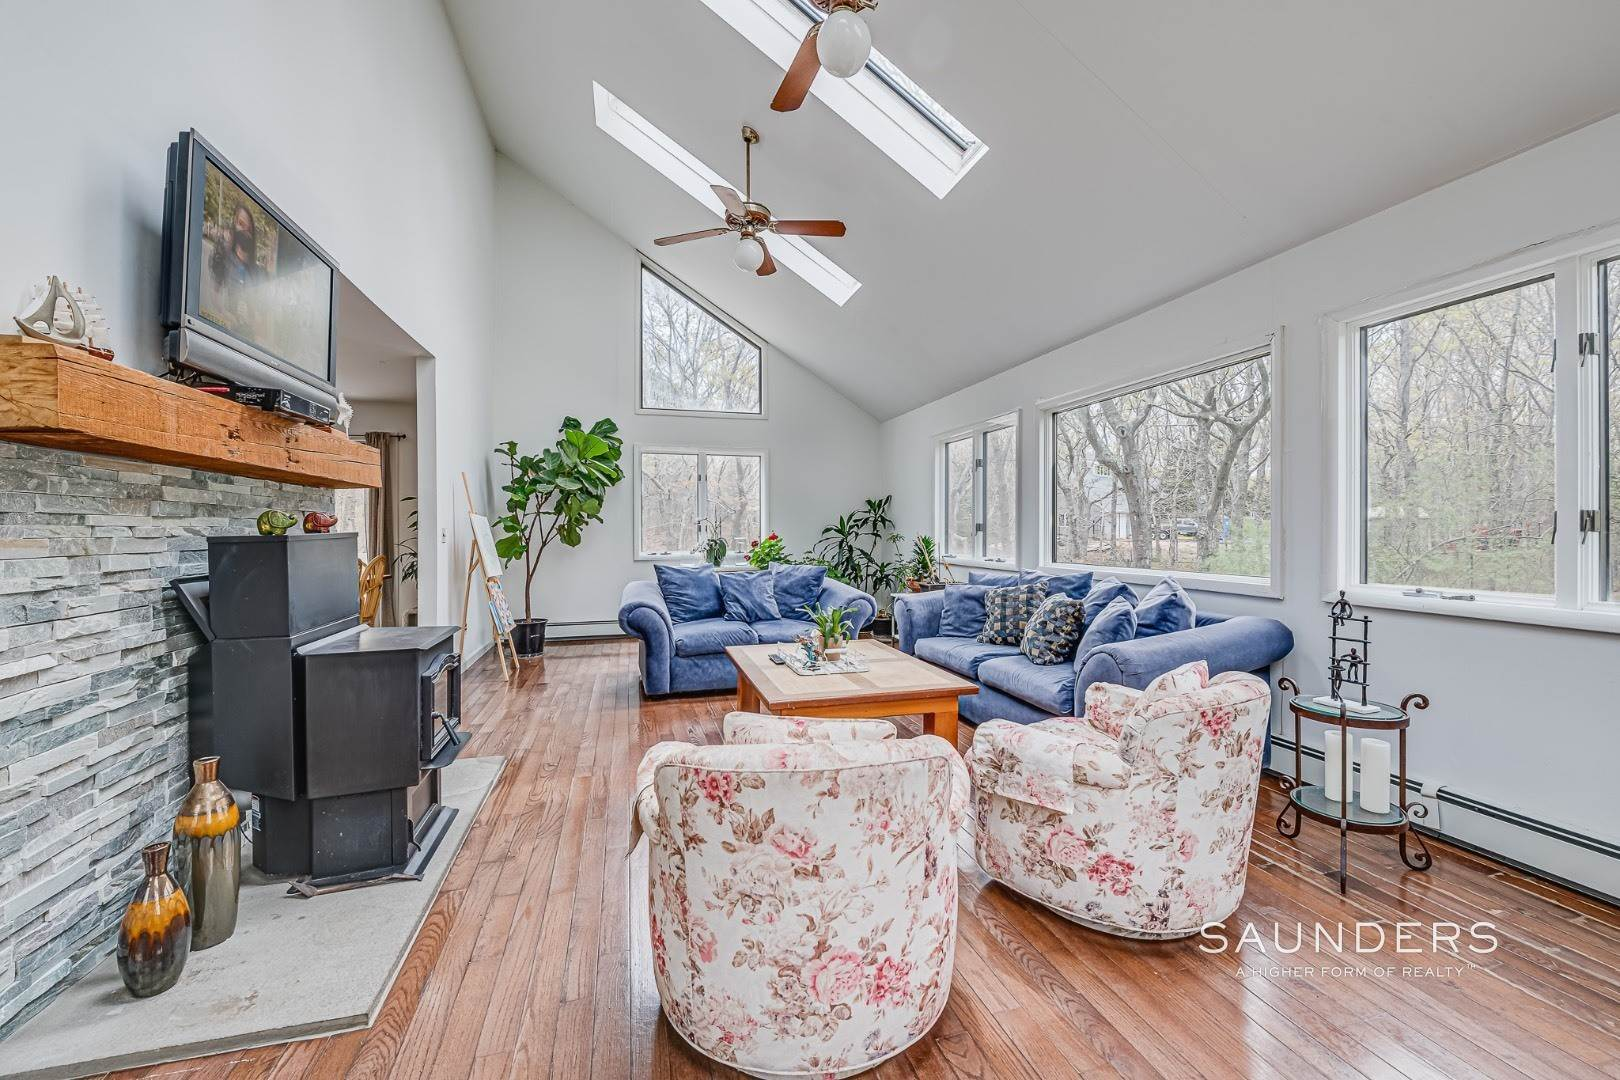 3. Single Family Homes for Sale at Contemporary Home On Large Parcel In Wainscott 20 Ridge Road, Wainscott, East Hampton Town, NY 11937